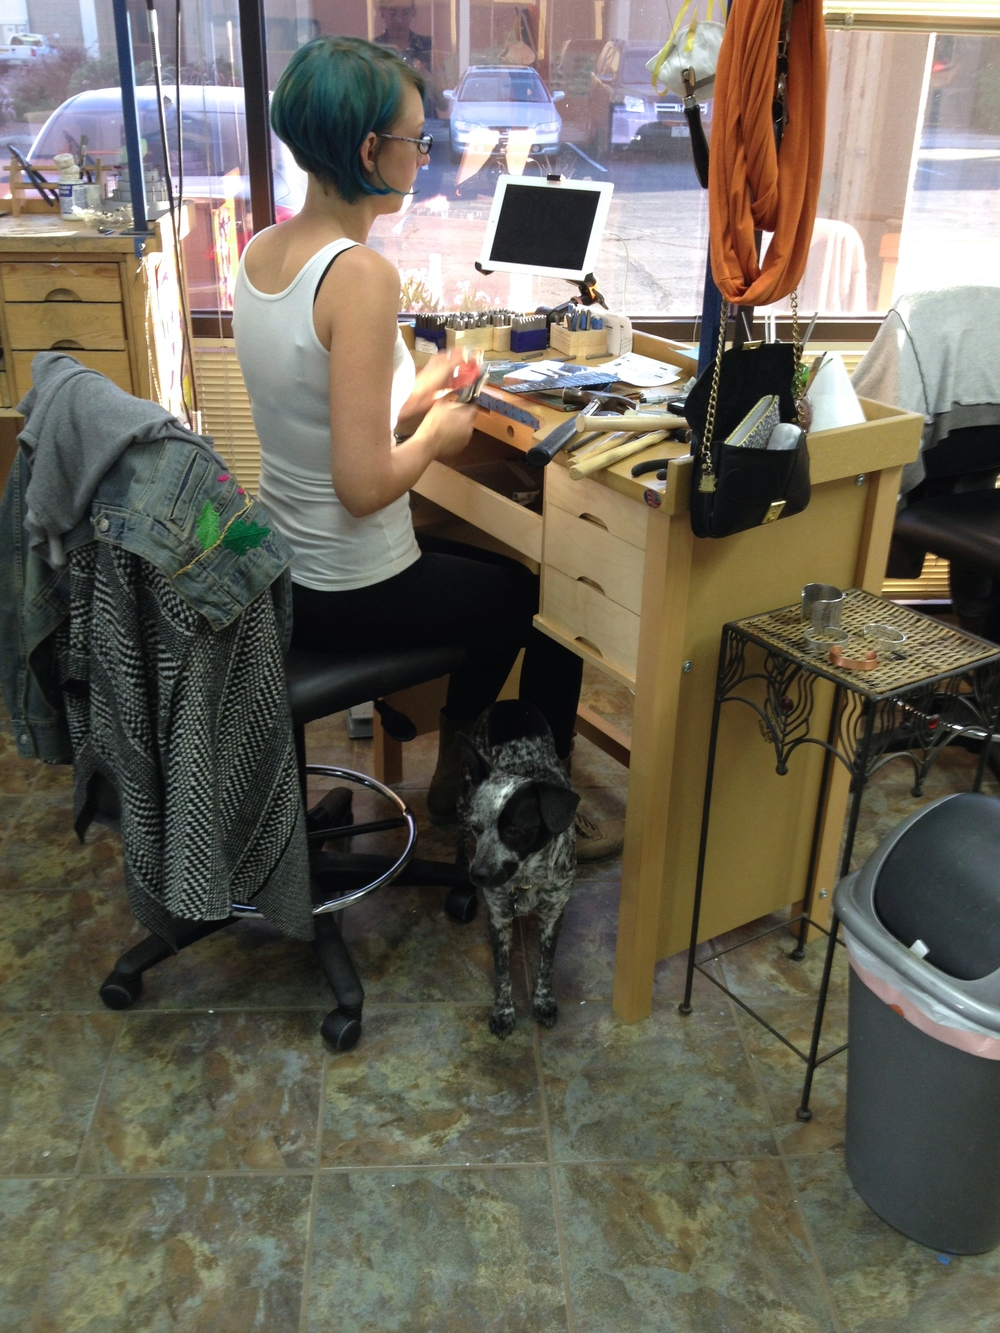 cassie at her work bench, a moondog at her feet.